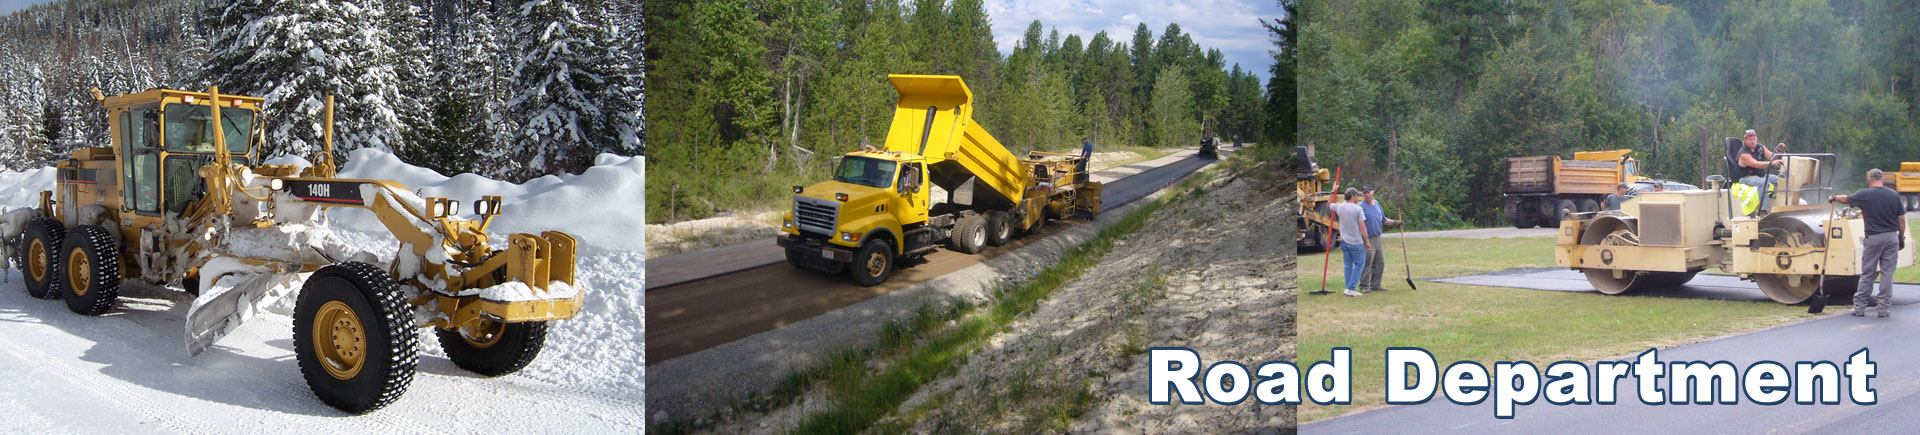 Road Department Header